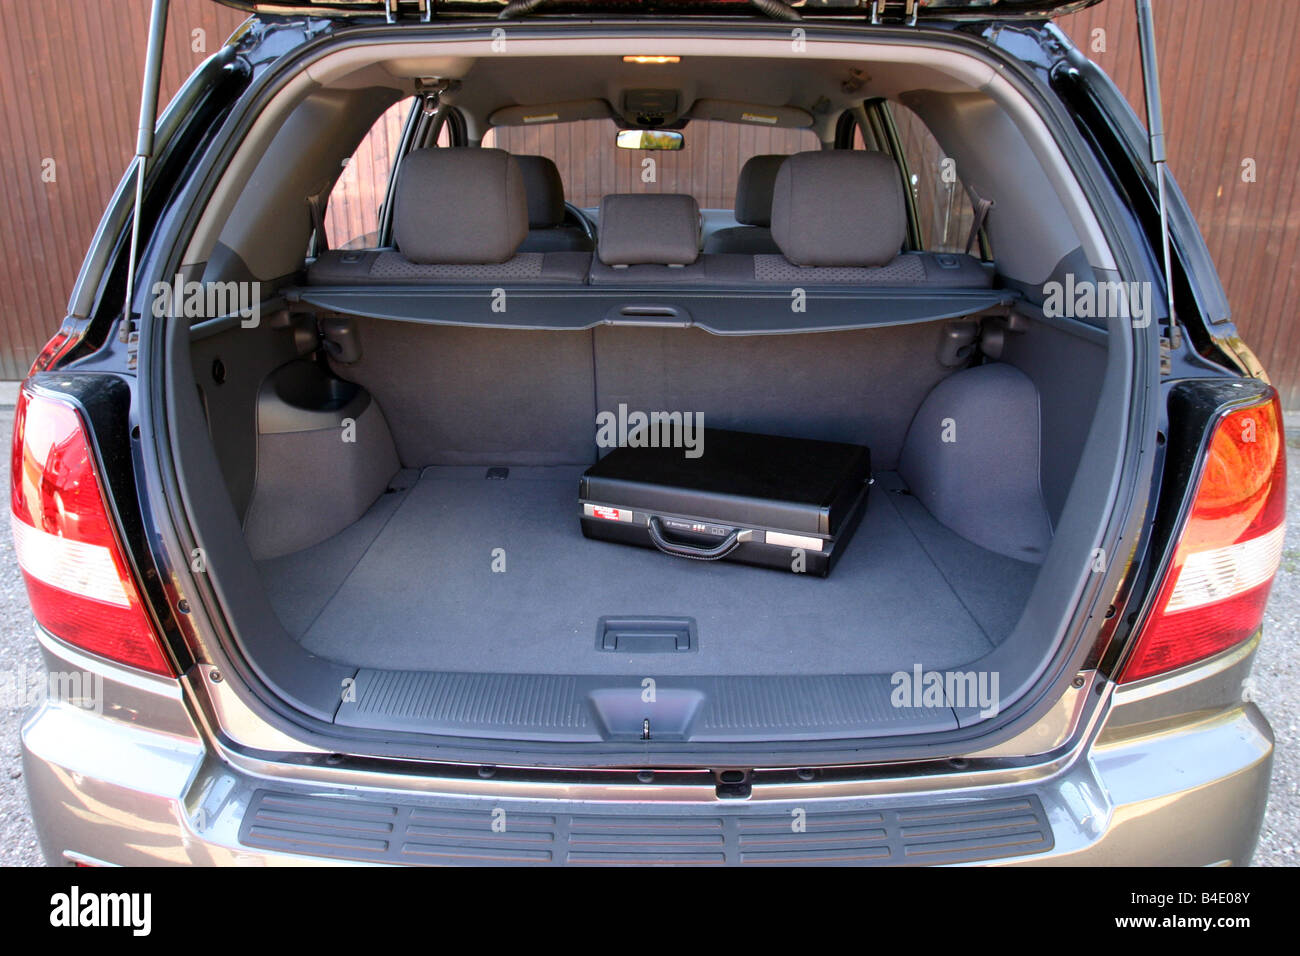 Car, Kia Sorento, cross country vehicle, model year 2002-, black, FGHDS, view into boot, technique/accessory, accessories - Stock Image